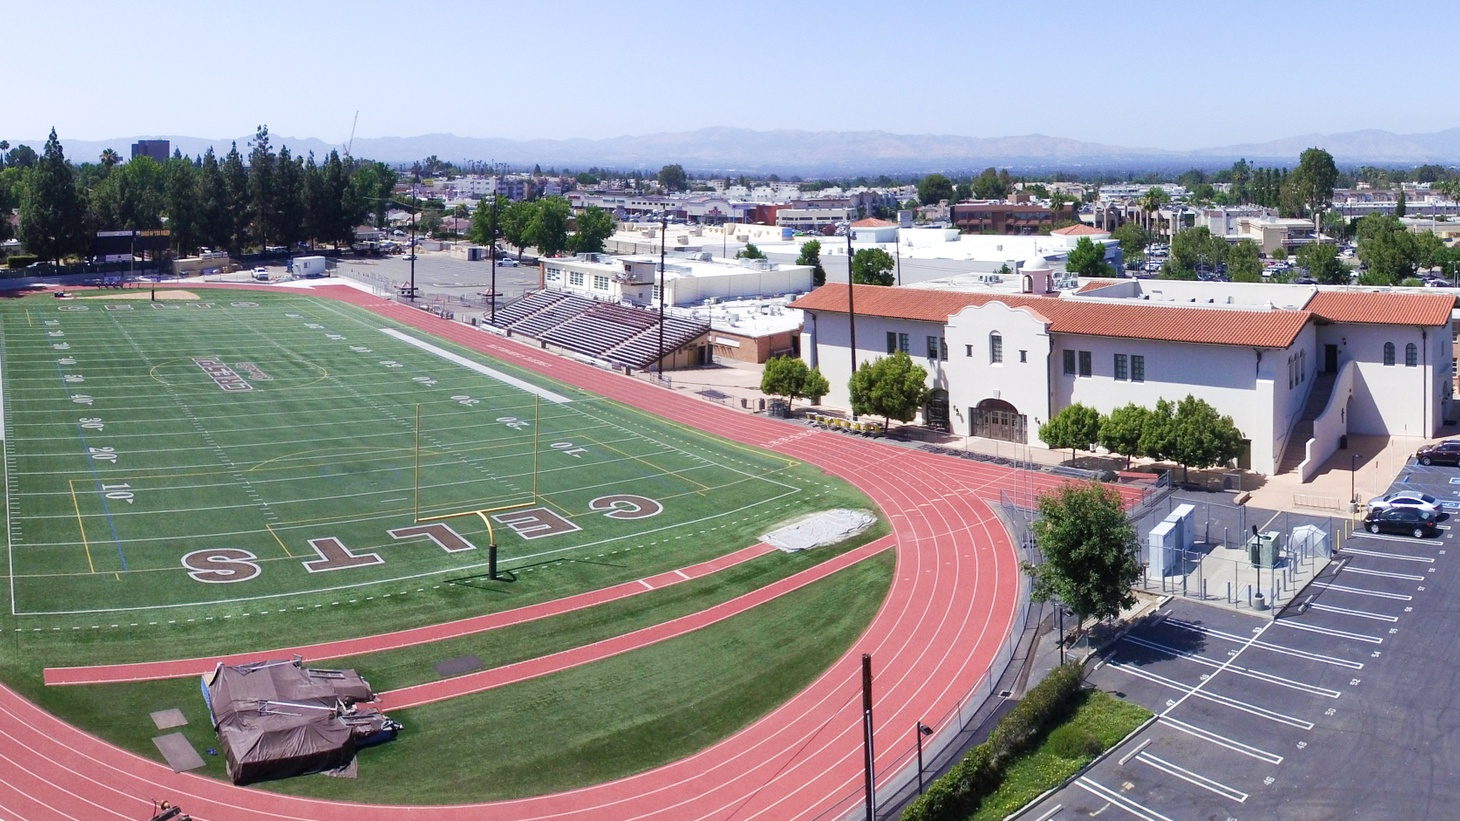 The pandemic forced staff at Crespi Carmelite High School to reevaluate athletics programs, as many students there participate in sports. That's according to the school's president, Ken Foersch.